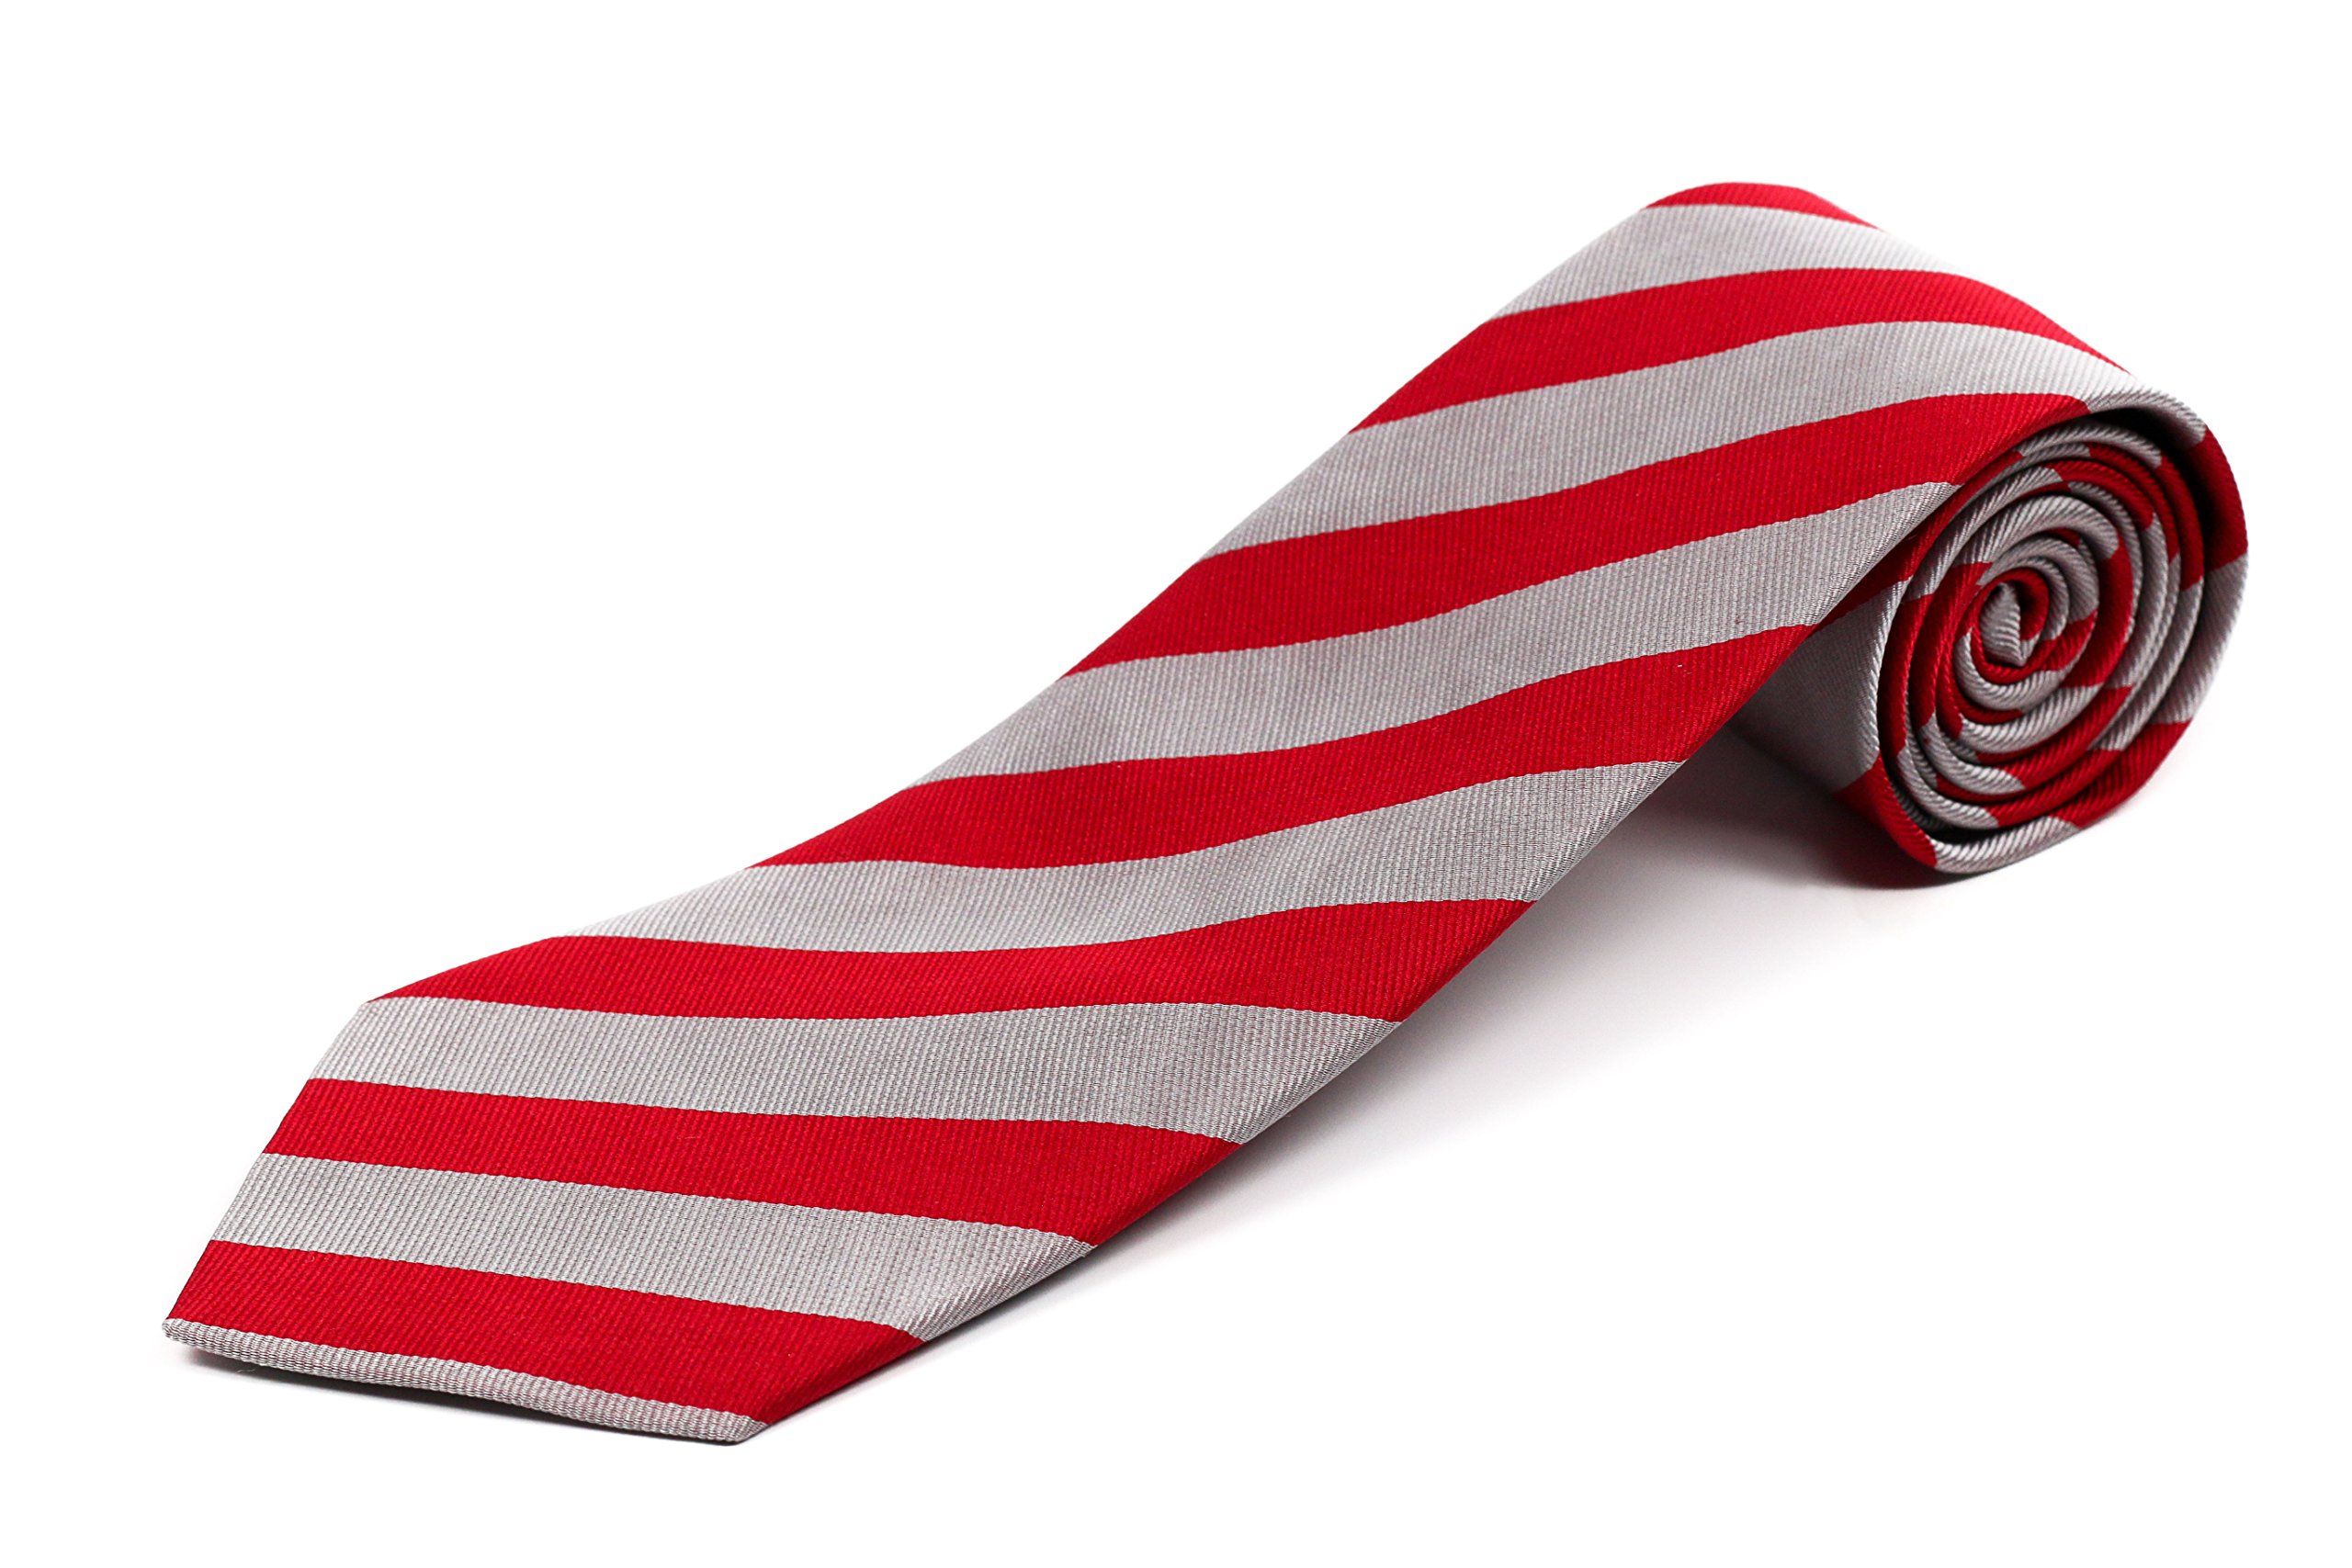 100% Silk Extra Long Wide Silver and Red Striped Silk College Tie for Tall Men, 63 Inches Long, Traditional 3.75 Inch Width